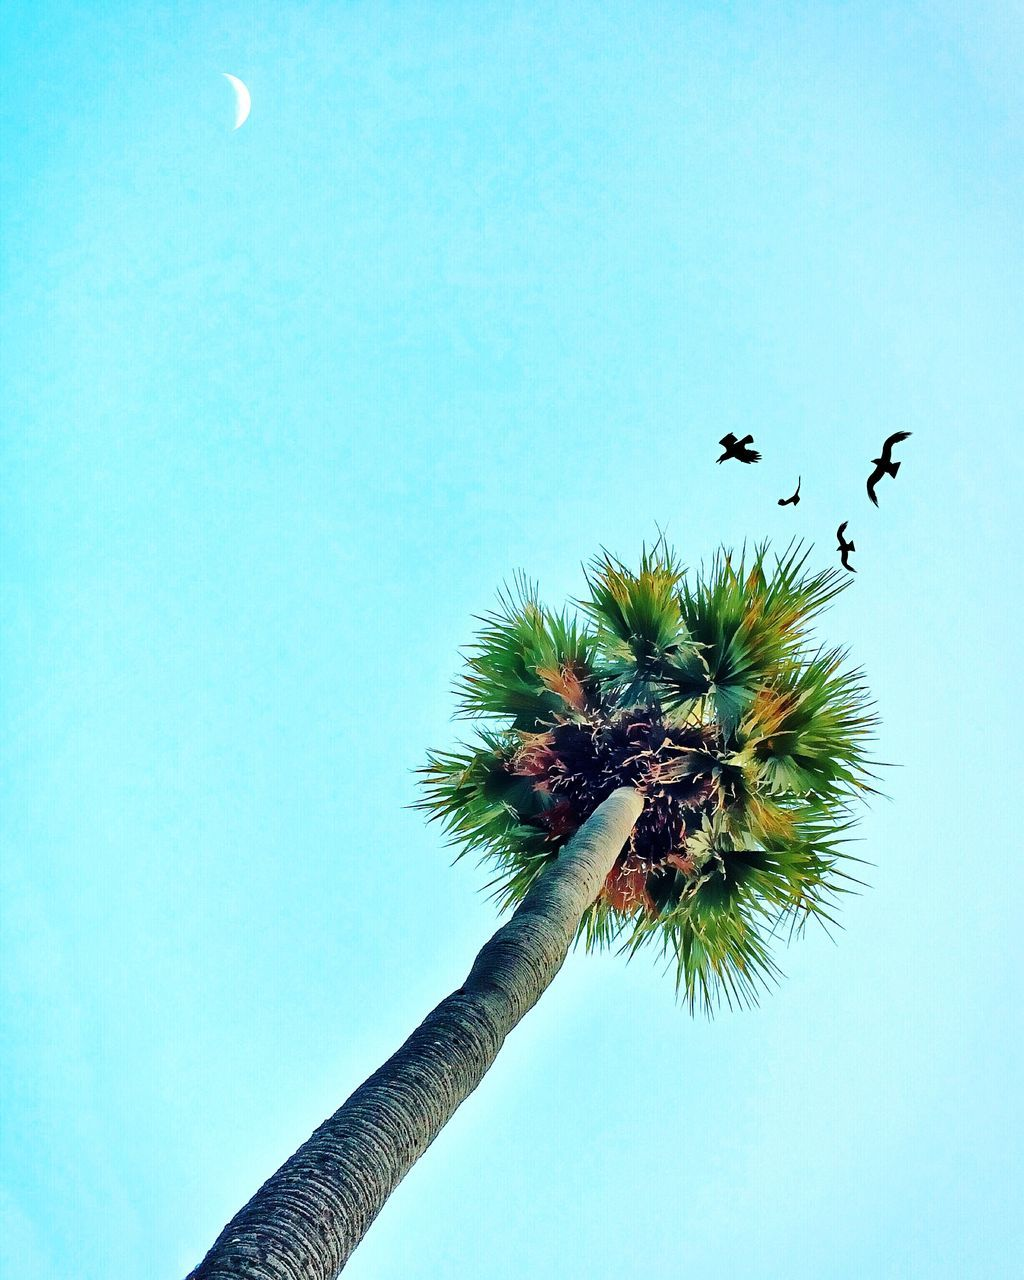 Low Angle View Of Birds Flying Over Coconut Palm Tree Against Clear Sky